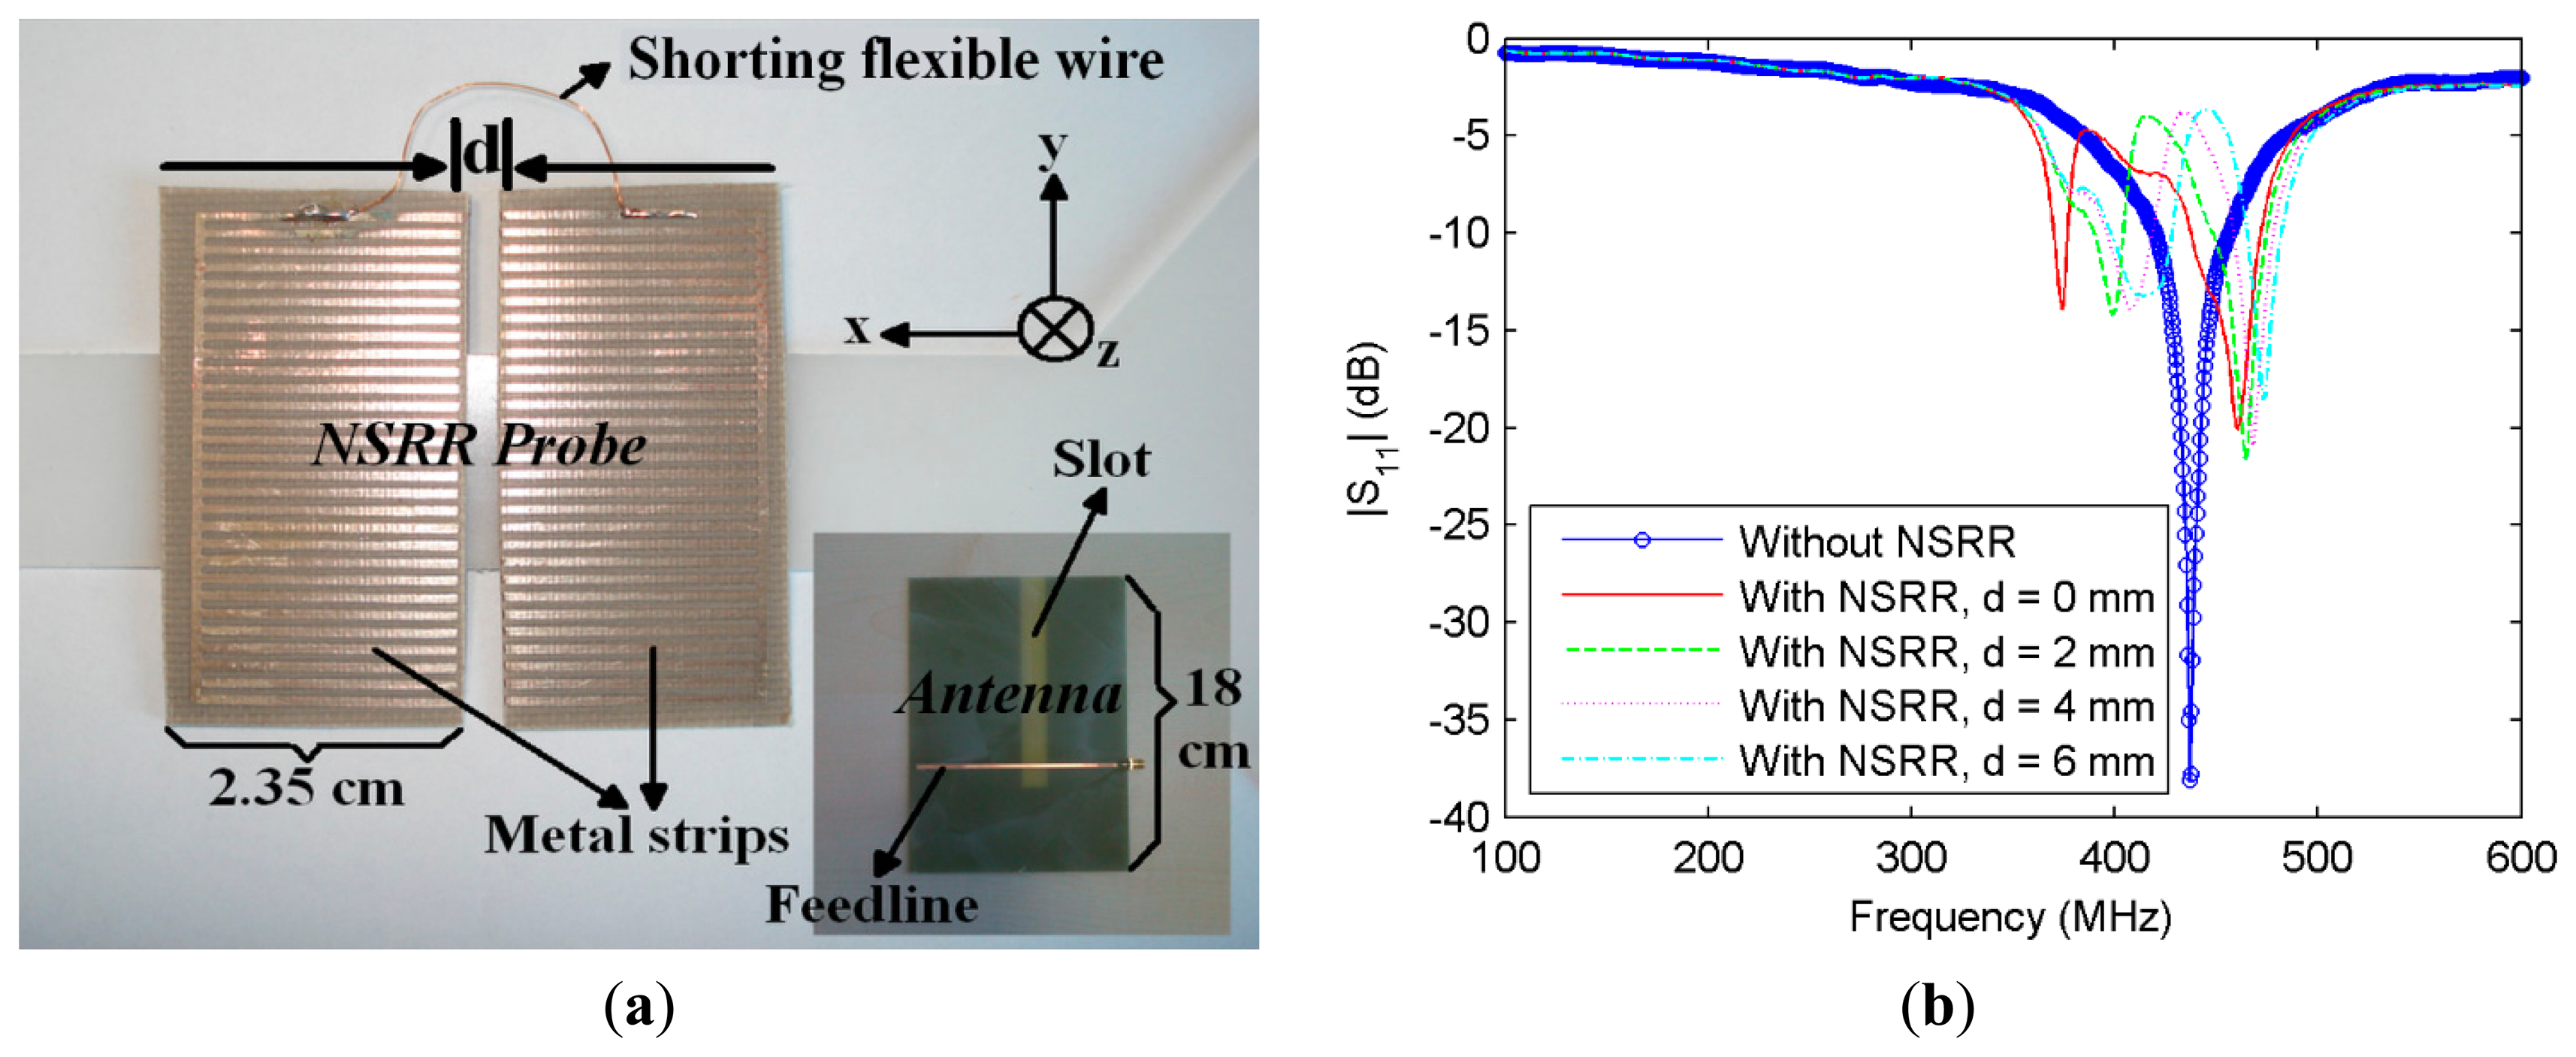 wire metamaterials based microring resonator - designed sensor communication network and information panel for a hydrogen fuel-cell based  line metamaterials  plasmonic microring resonator.